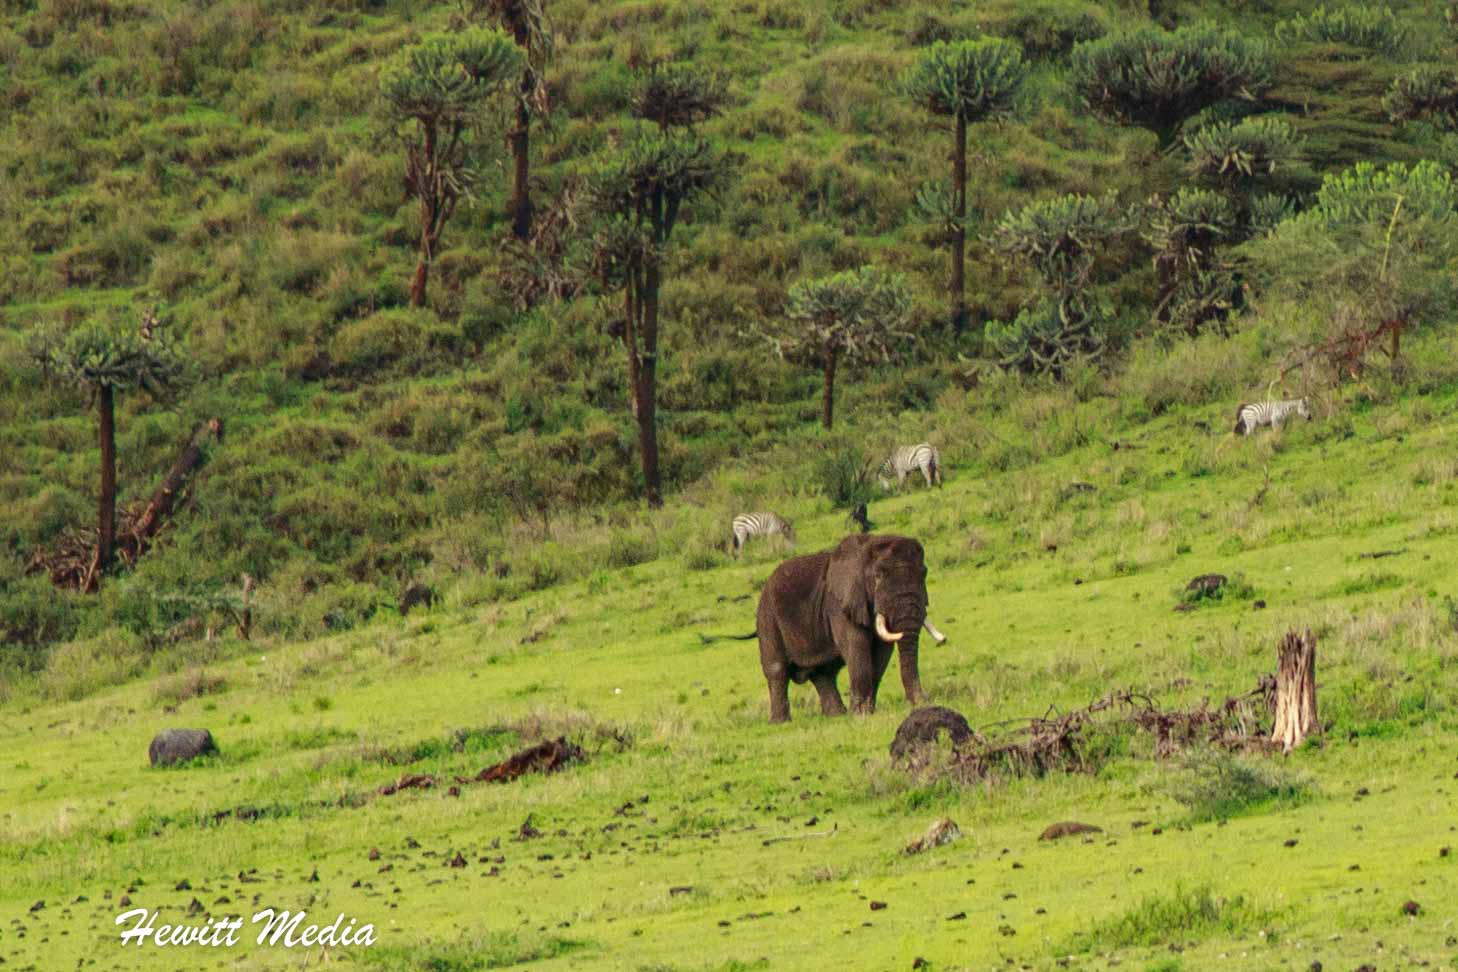 A bull elephant feeds inside the Ngorongoro Crater